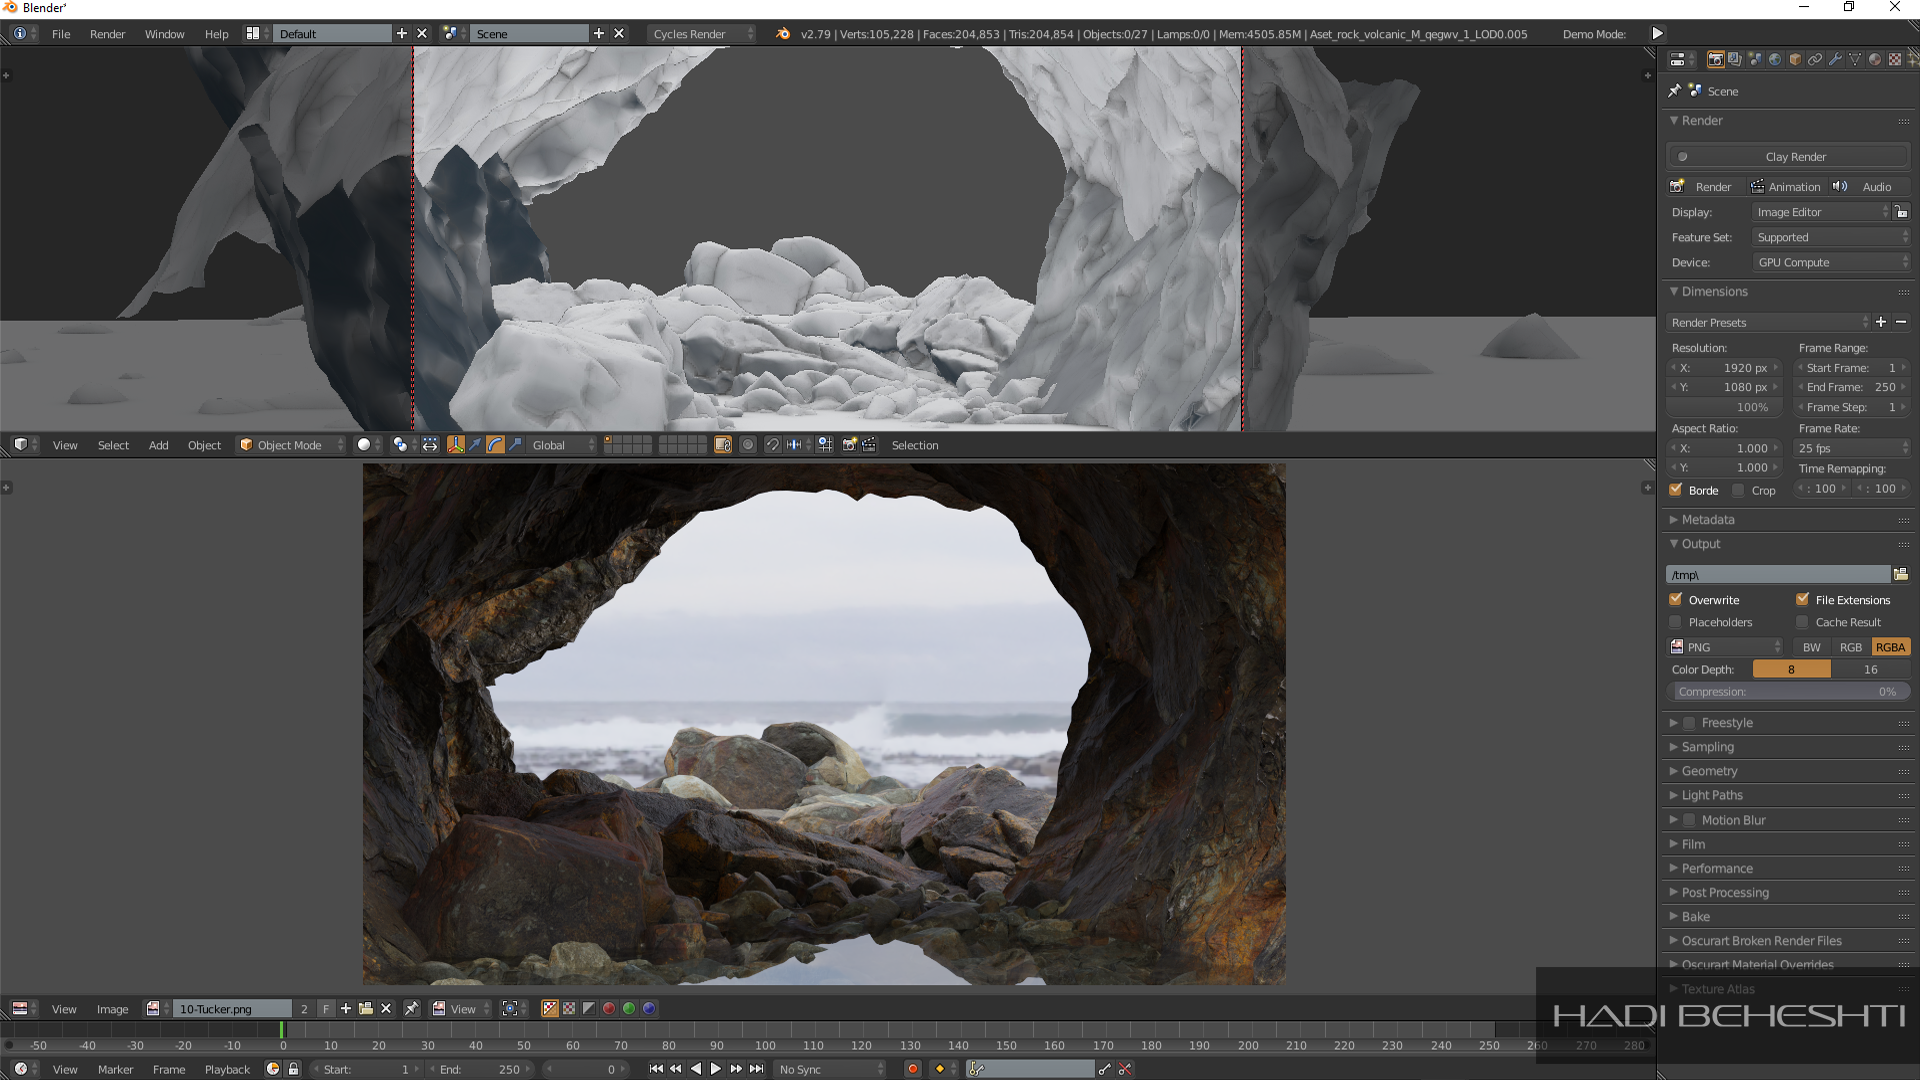 Rocks on the beach-1-Environment-Blender-B3d-Rendering-Cycles Render Engine-Hadi Beheshti